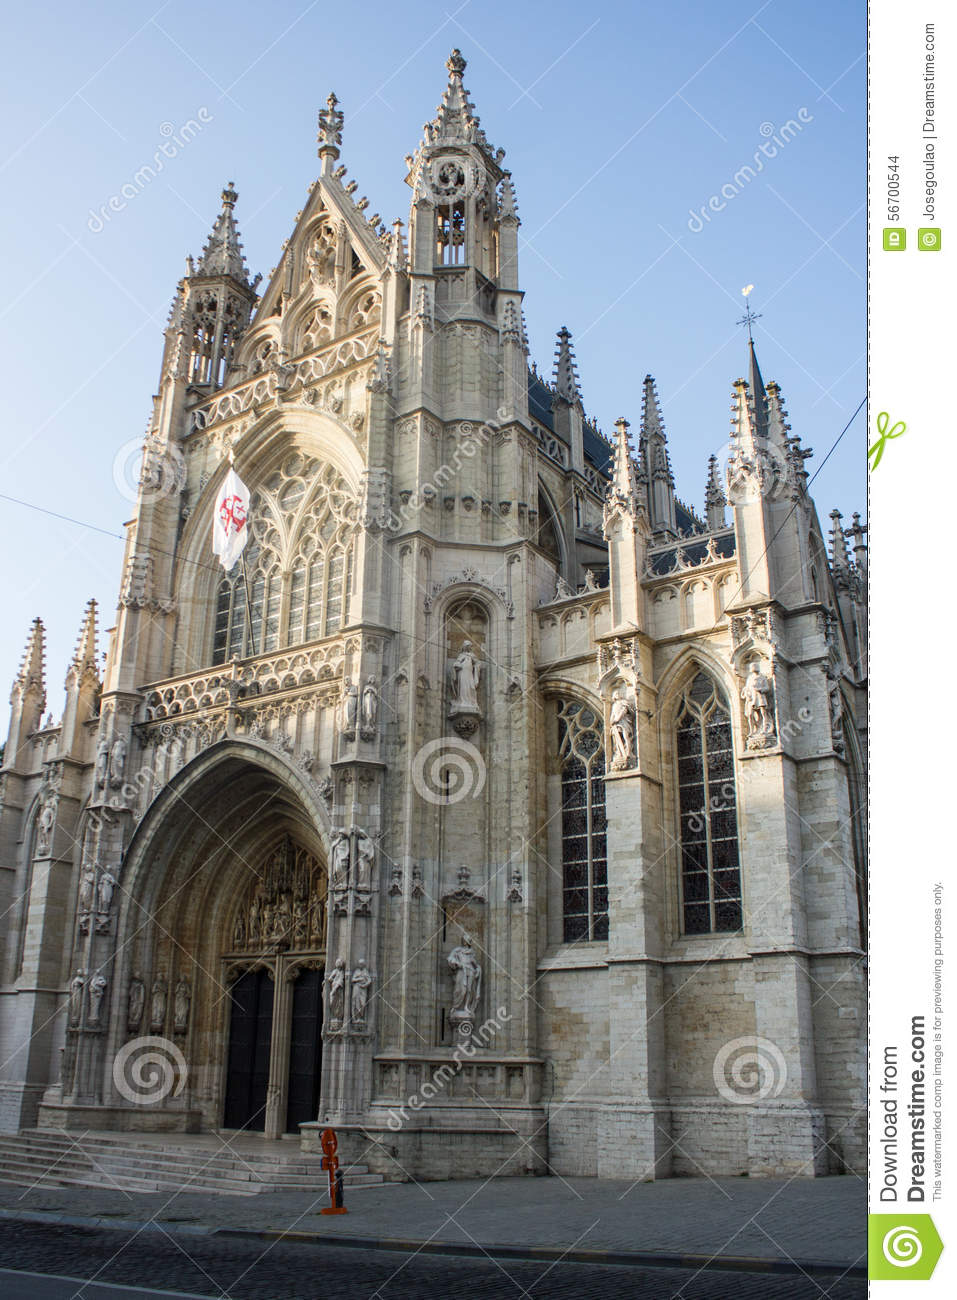 Facade Of Our Blessed Lady Of The Sablon Church, Brussels